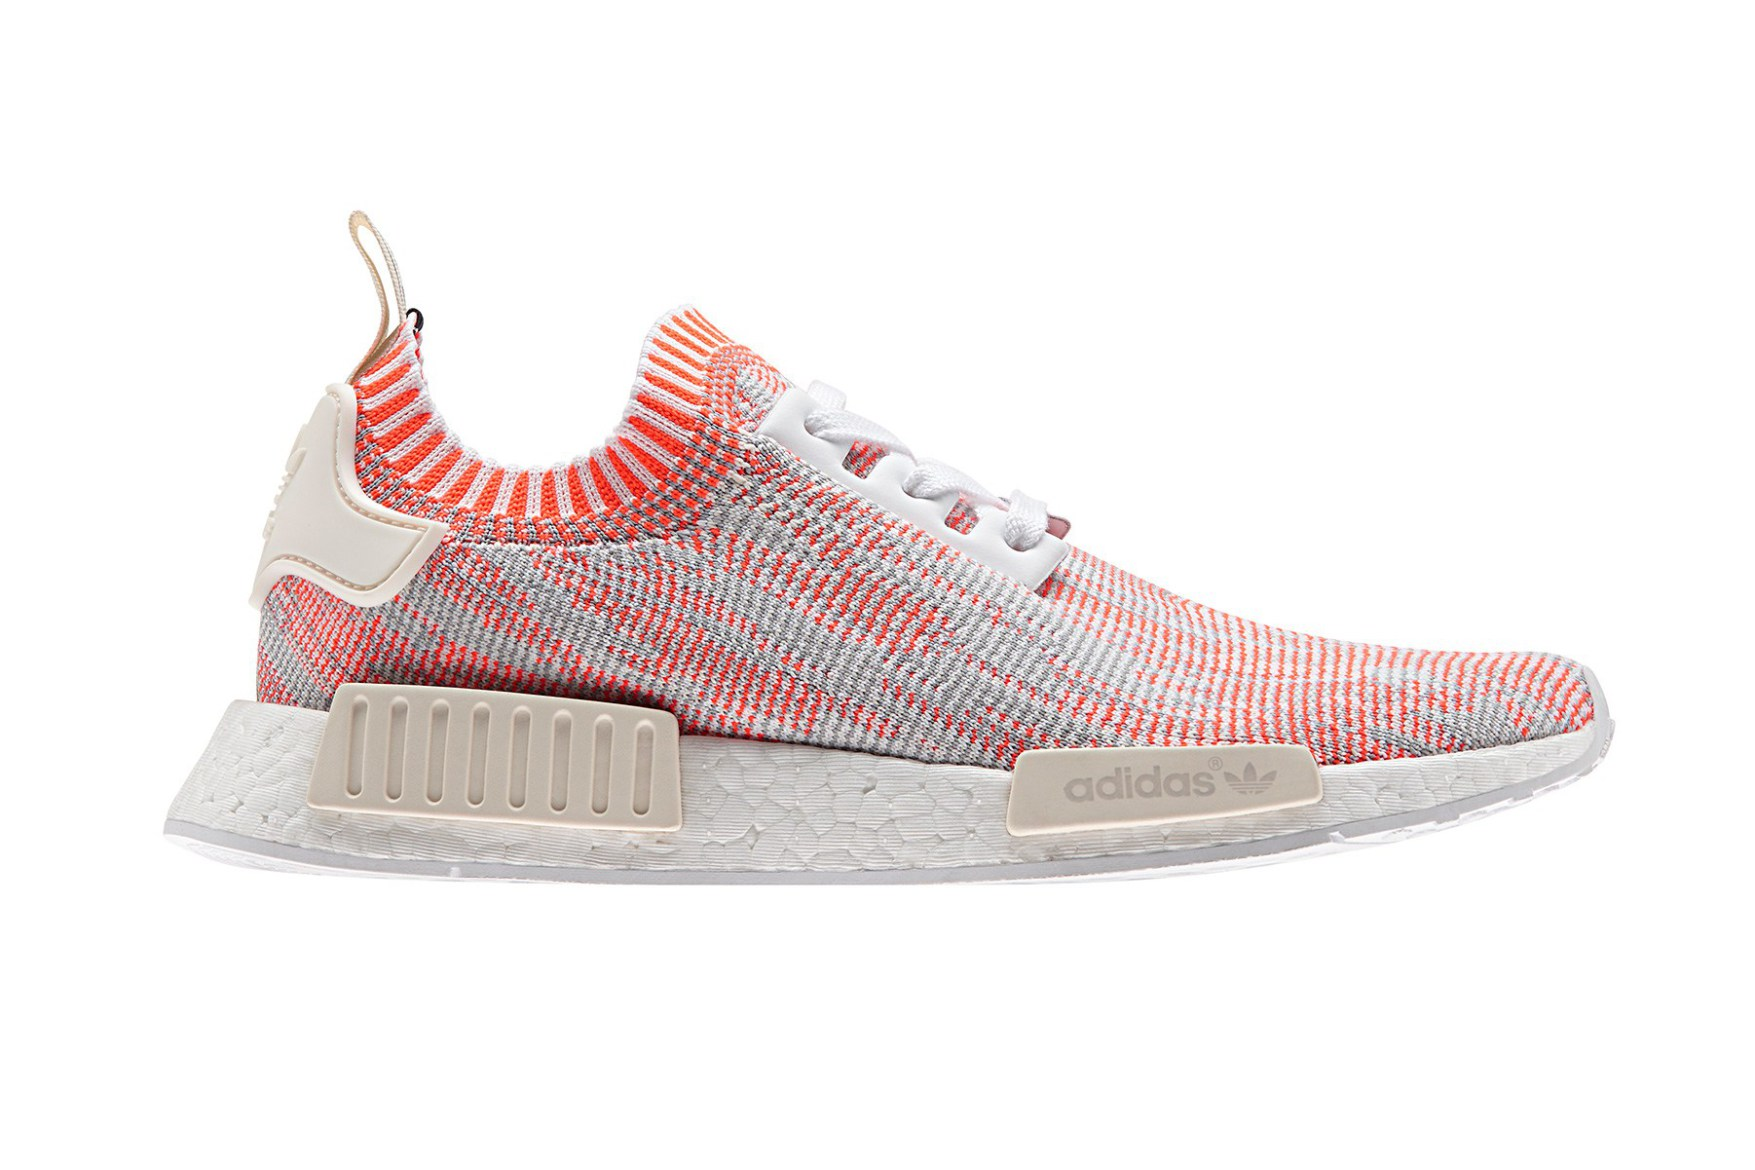 adidas-nmd-camo-us-release-3